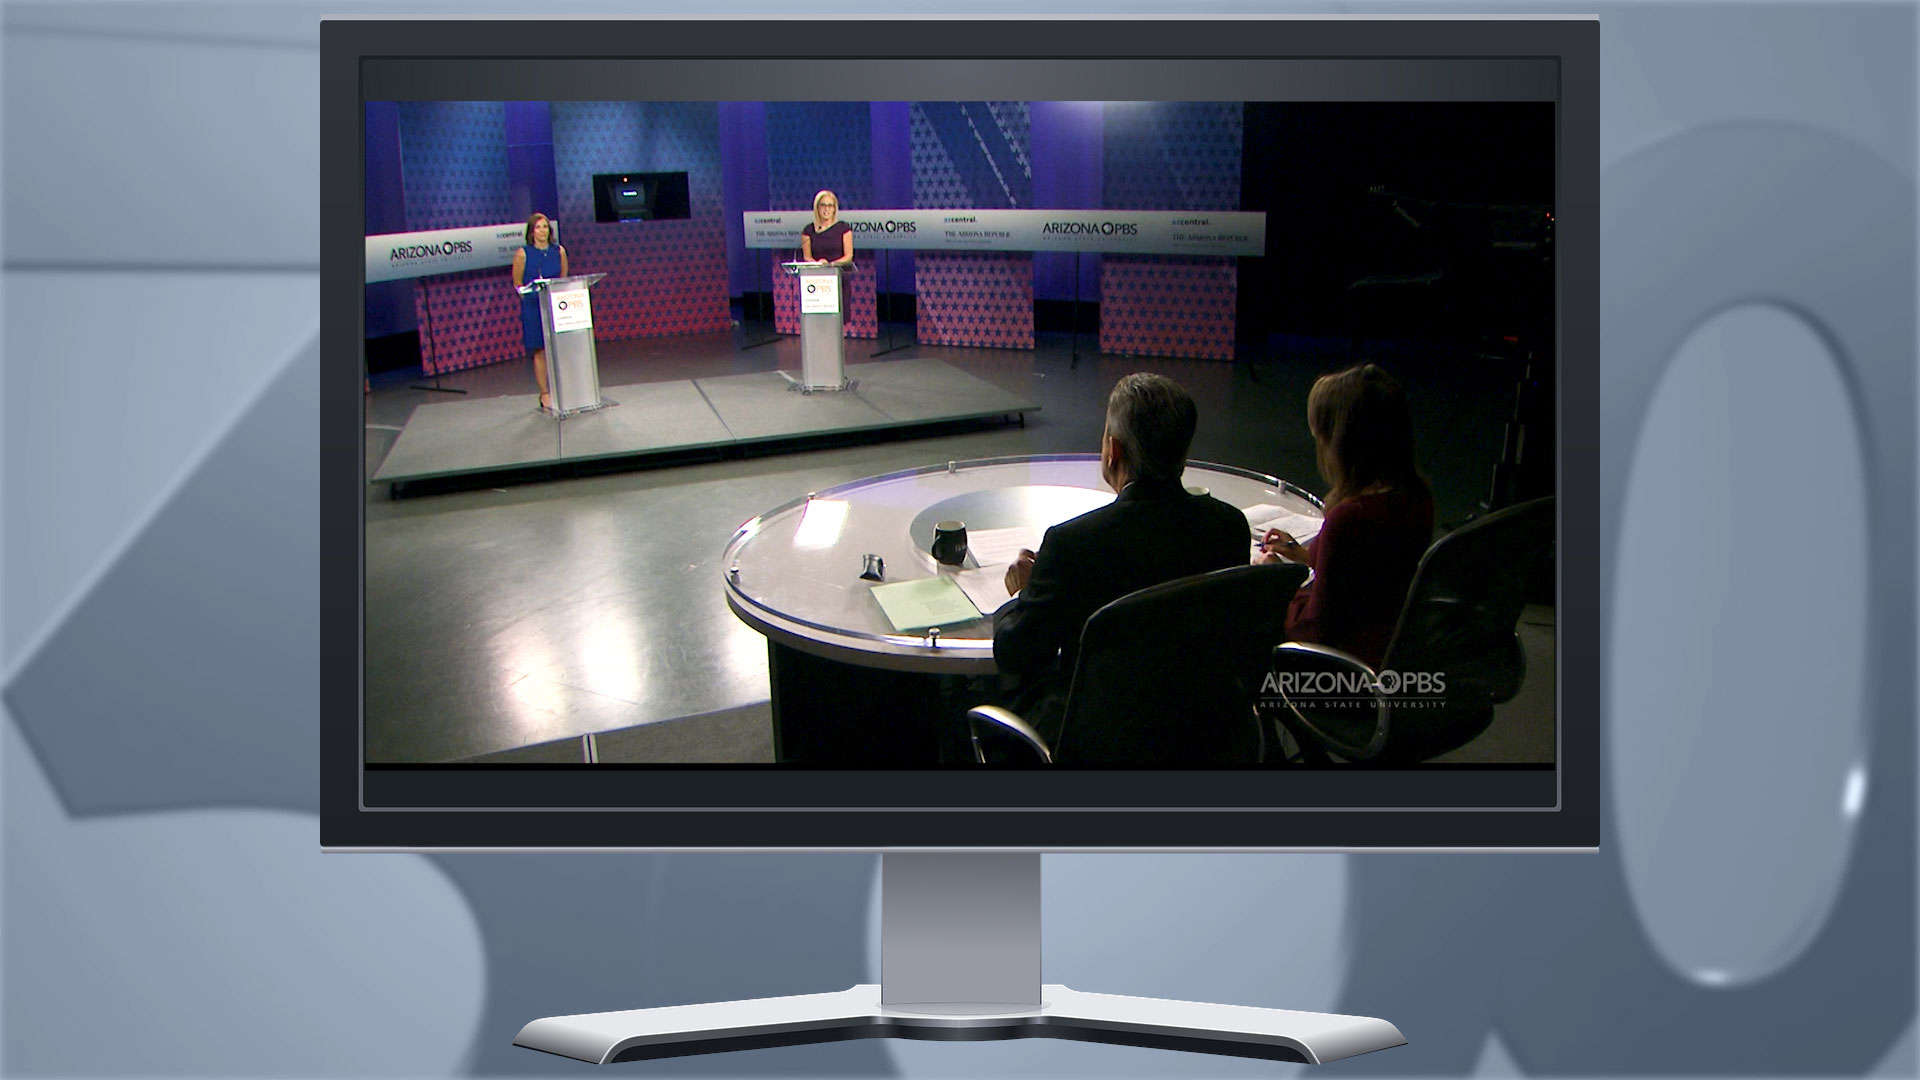 A photo illustration showing the U.S. Senate debate between candidates Martha McSally and Kyrsten Sinema at Arizona PBS in Phoenix. October 2018.